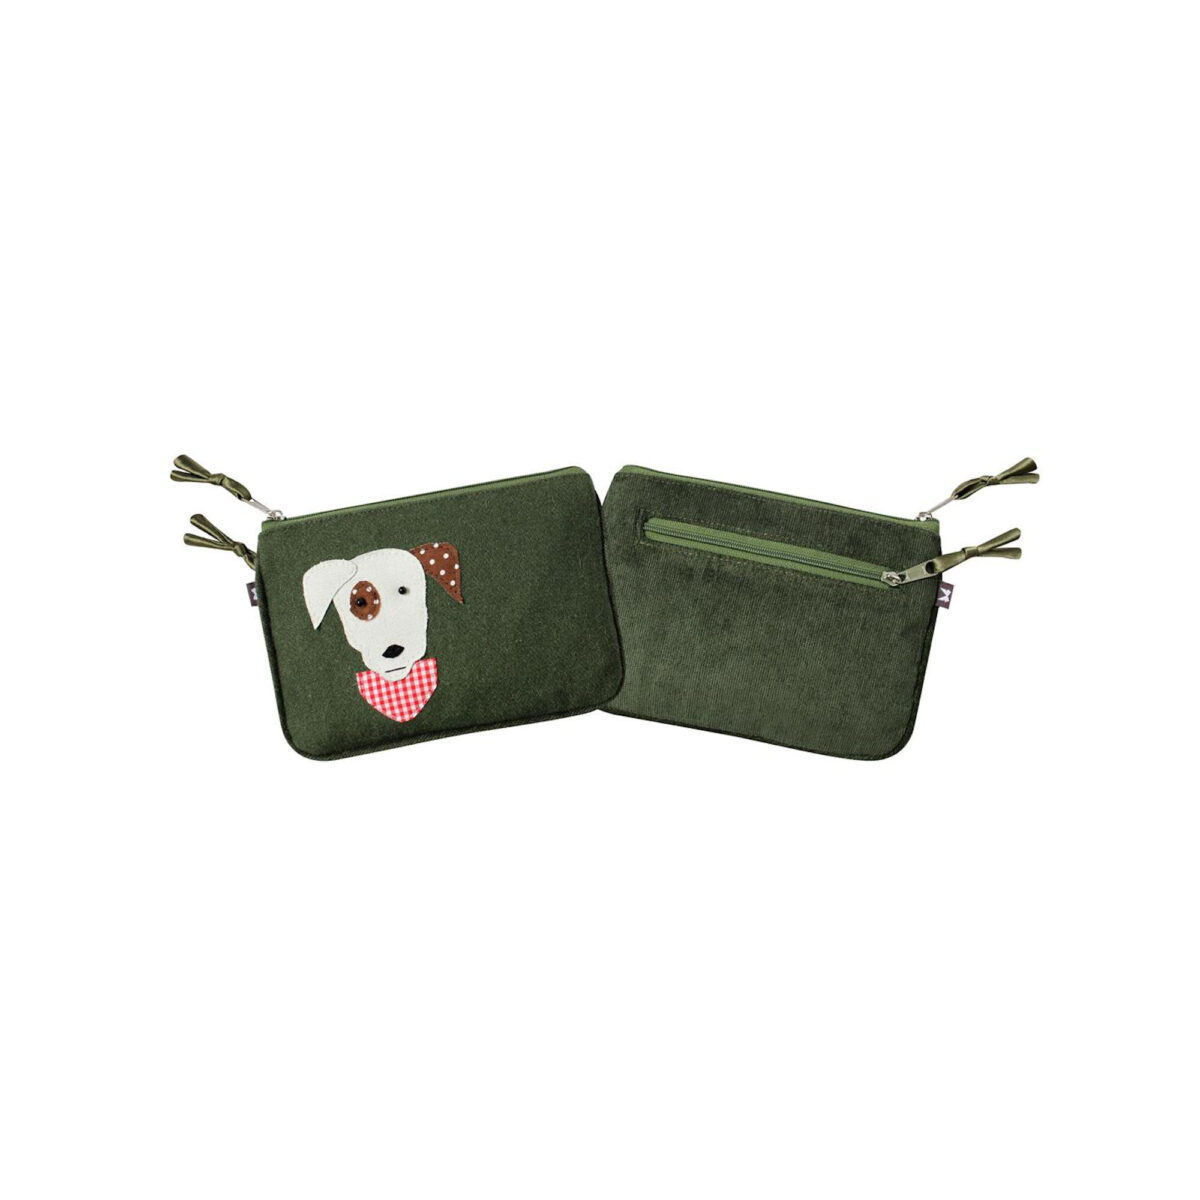 Dog Juliet Purse